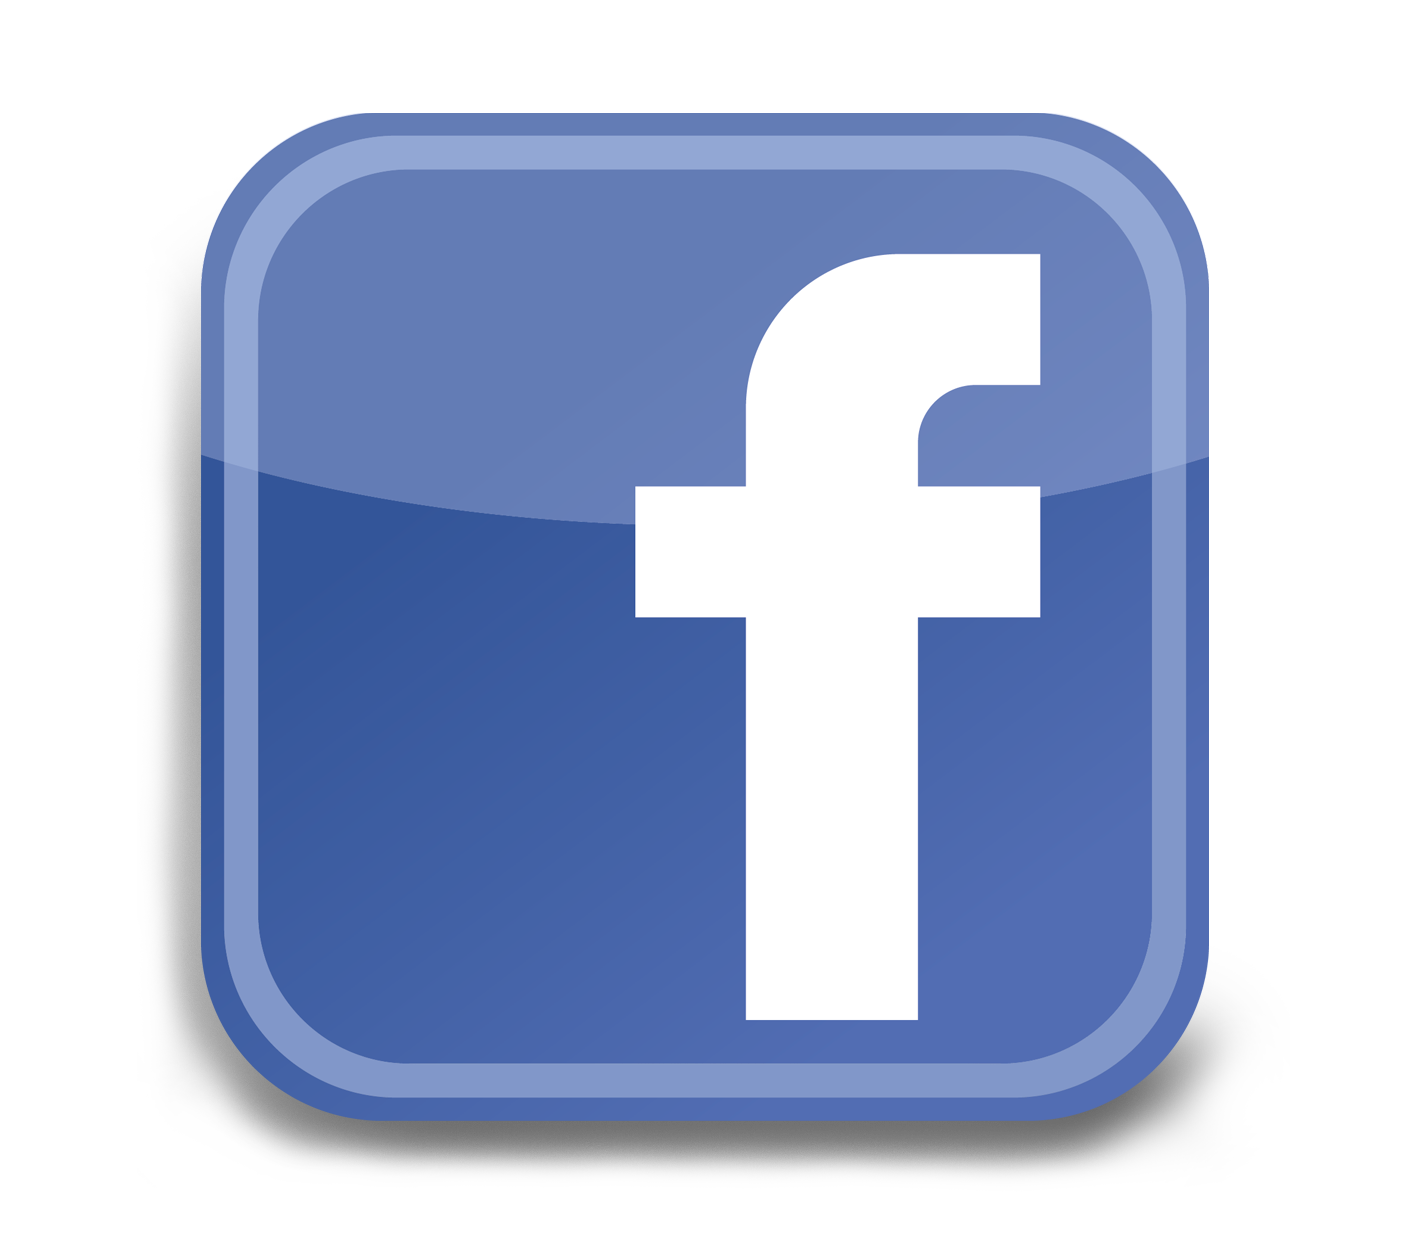 Facebook logo png transparent background. Logos images free download